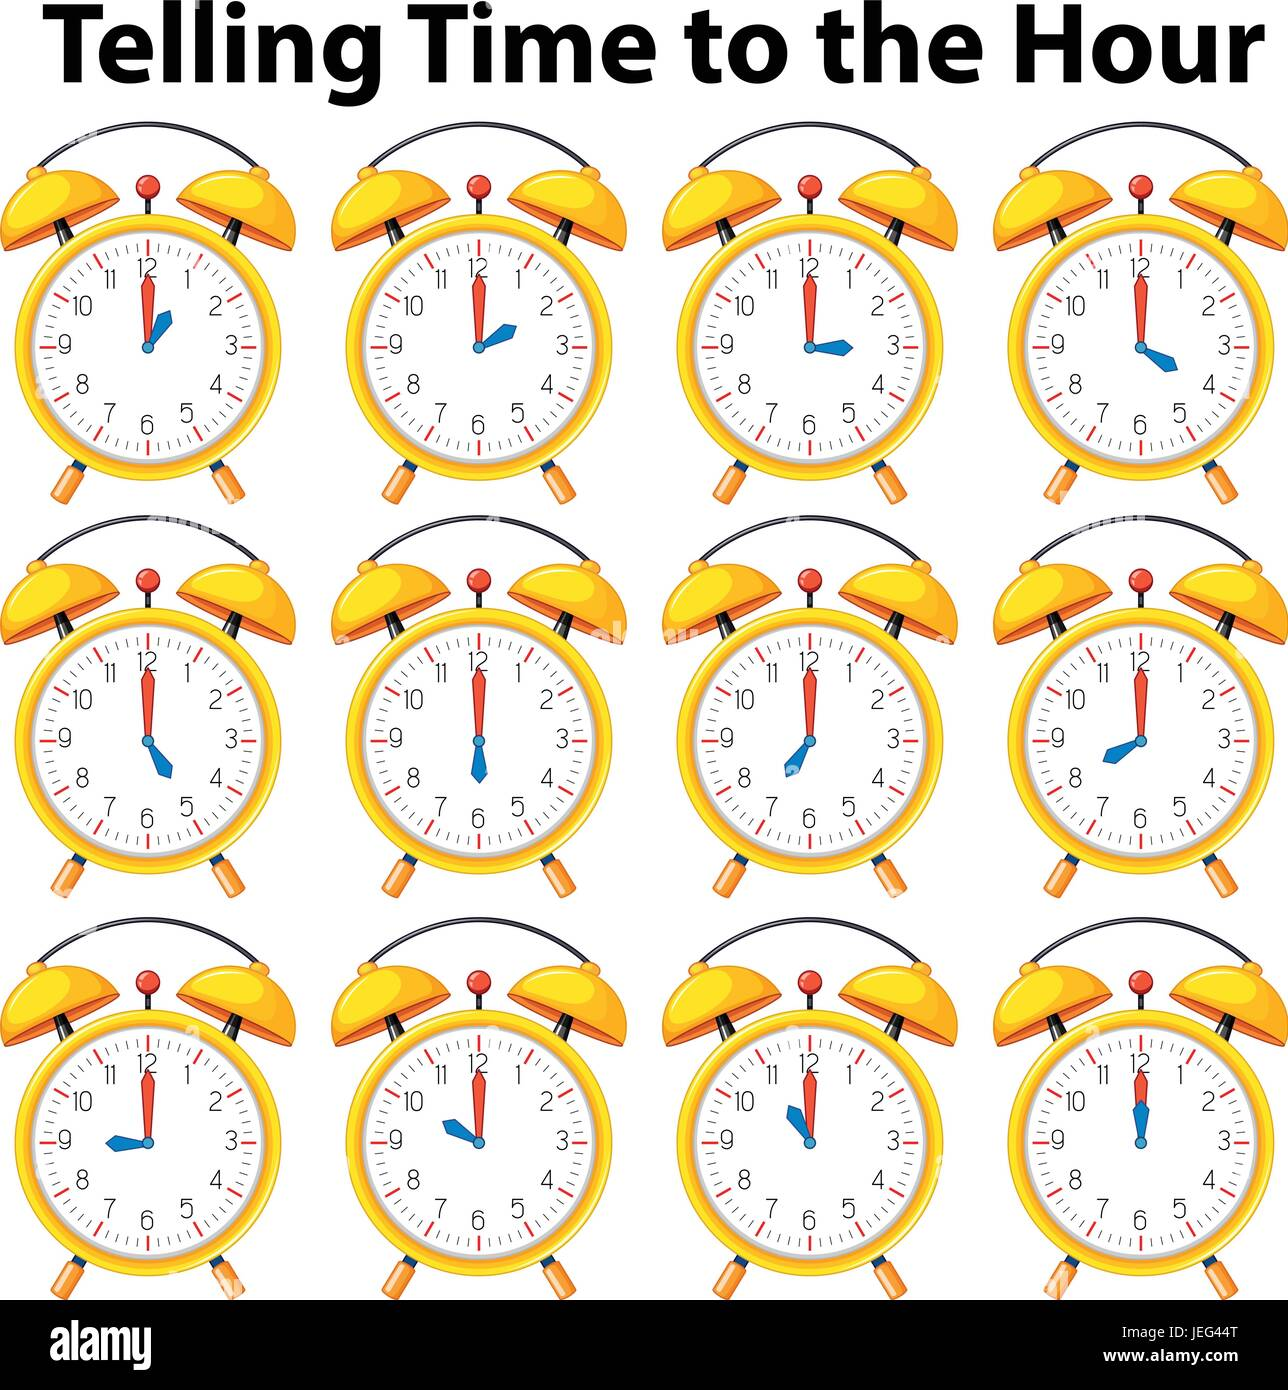 Telling Time To The Hour On Yellow Clock Illustration Stock Vector Art Amp Illustration Vector